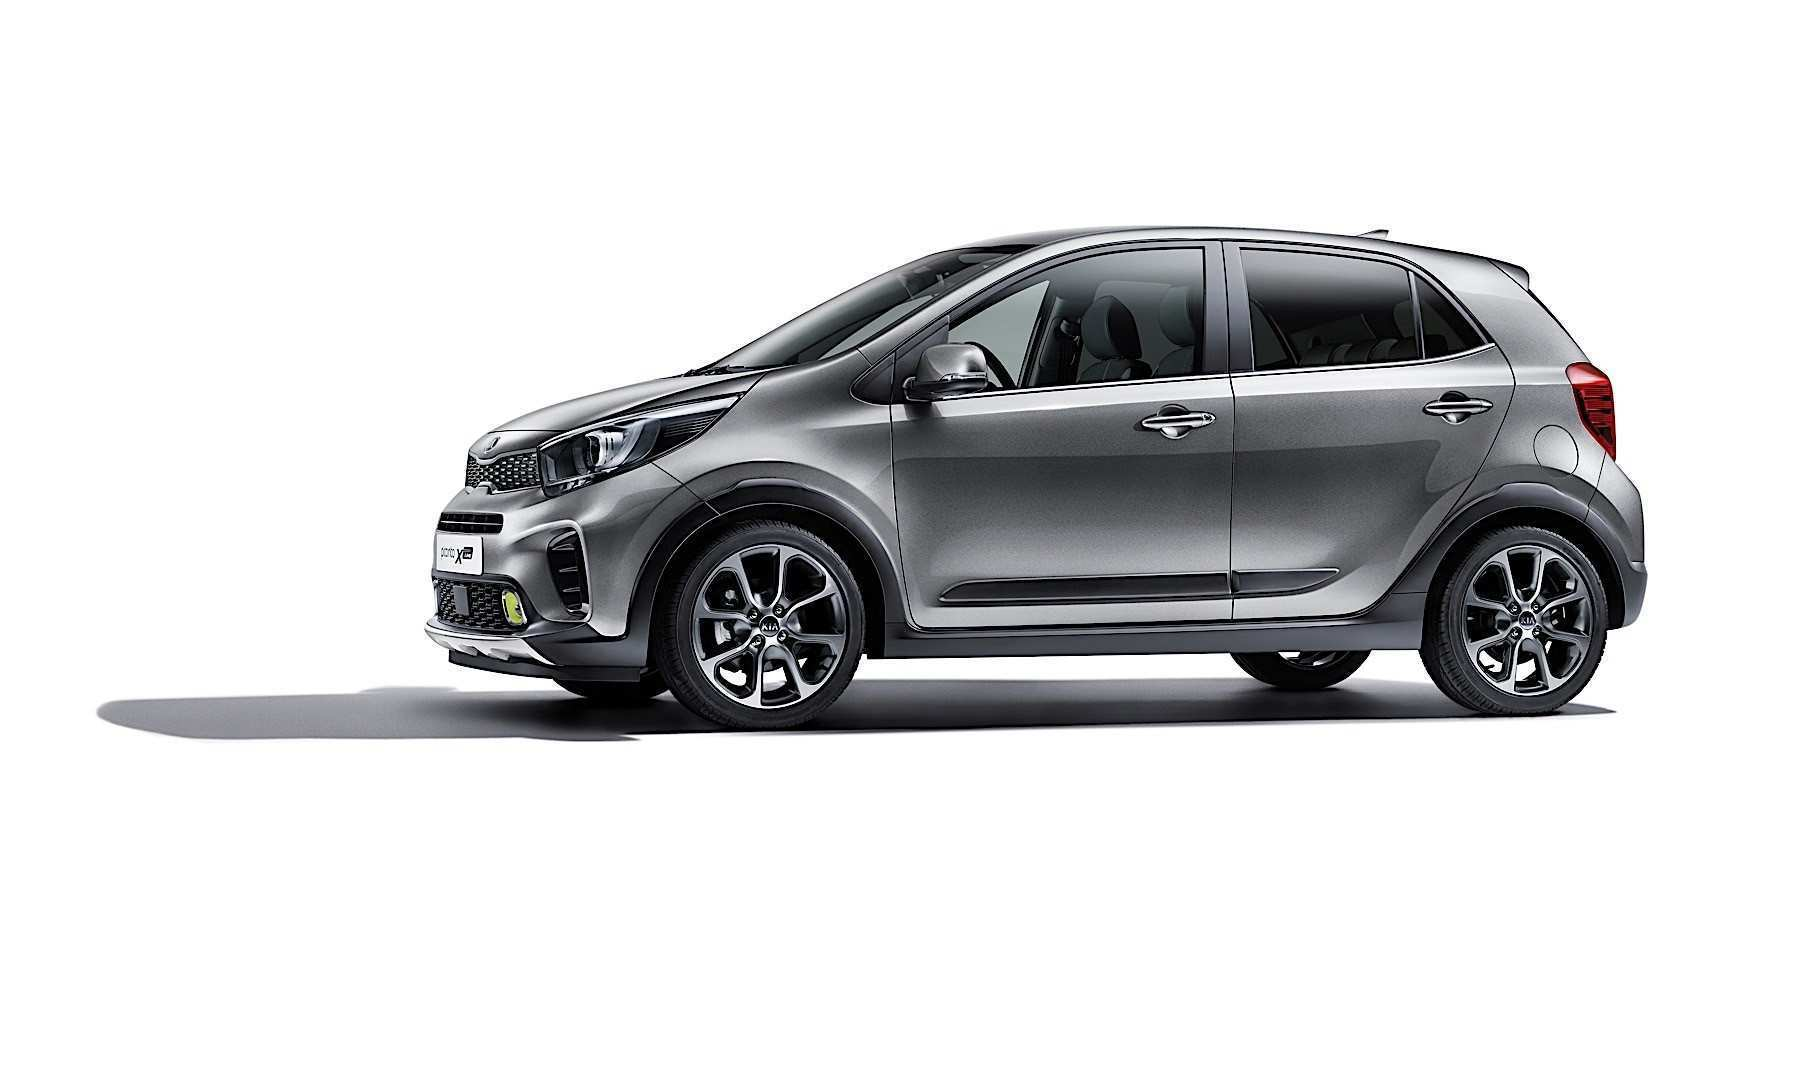 42 All New Kia Picanto 2019 Xline Engine